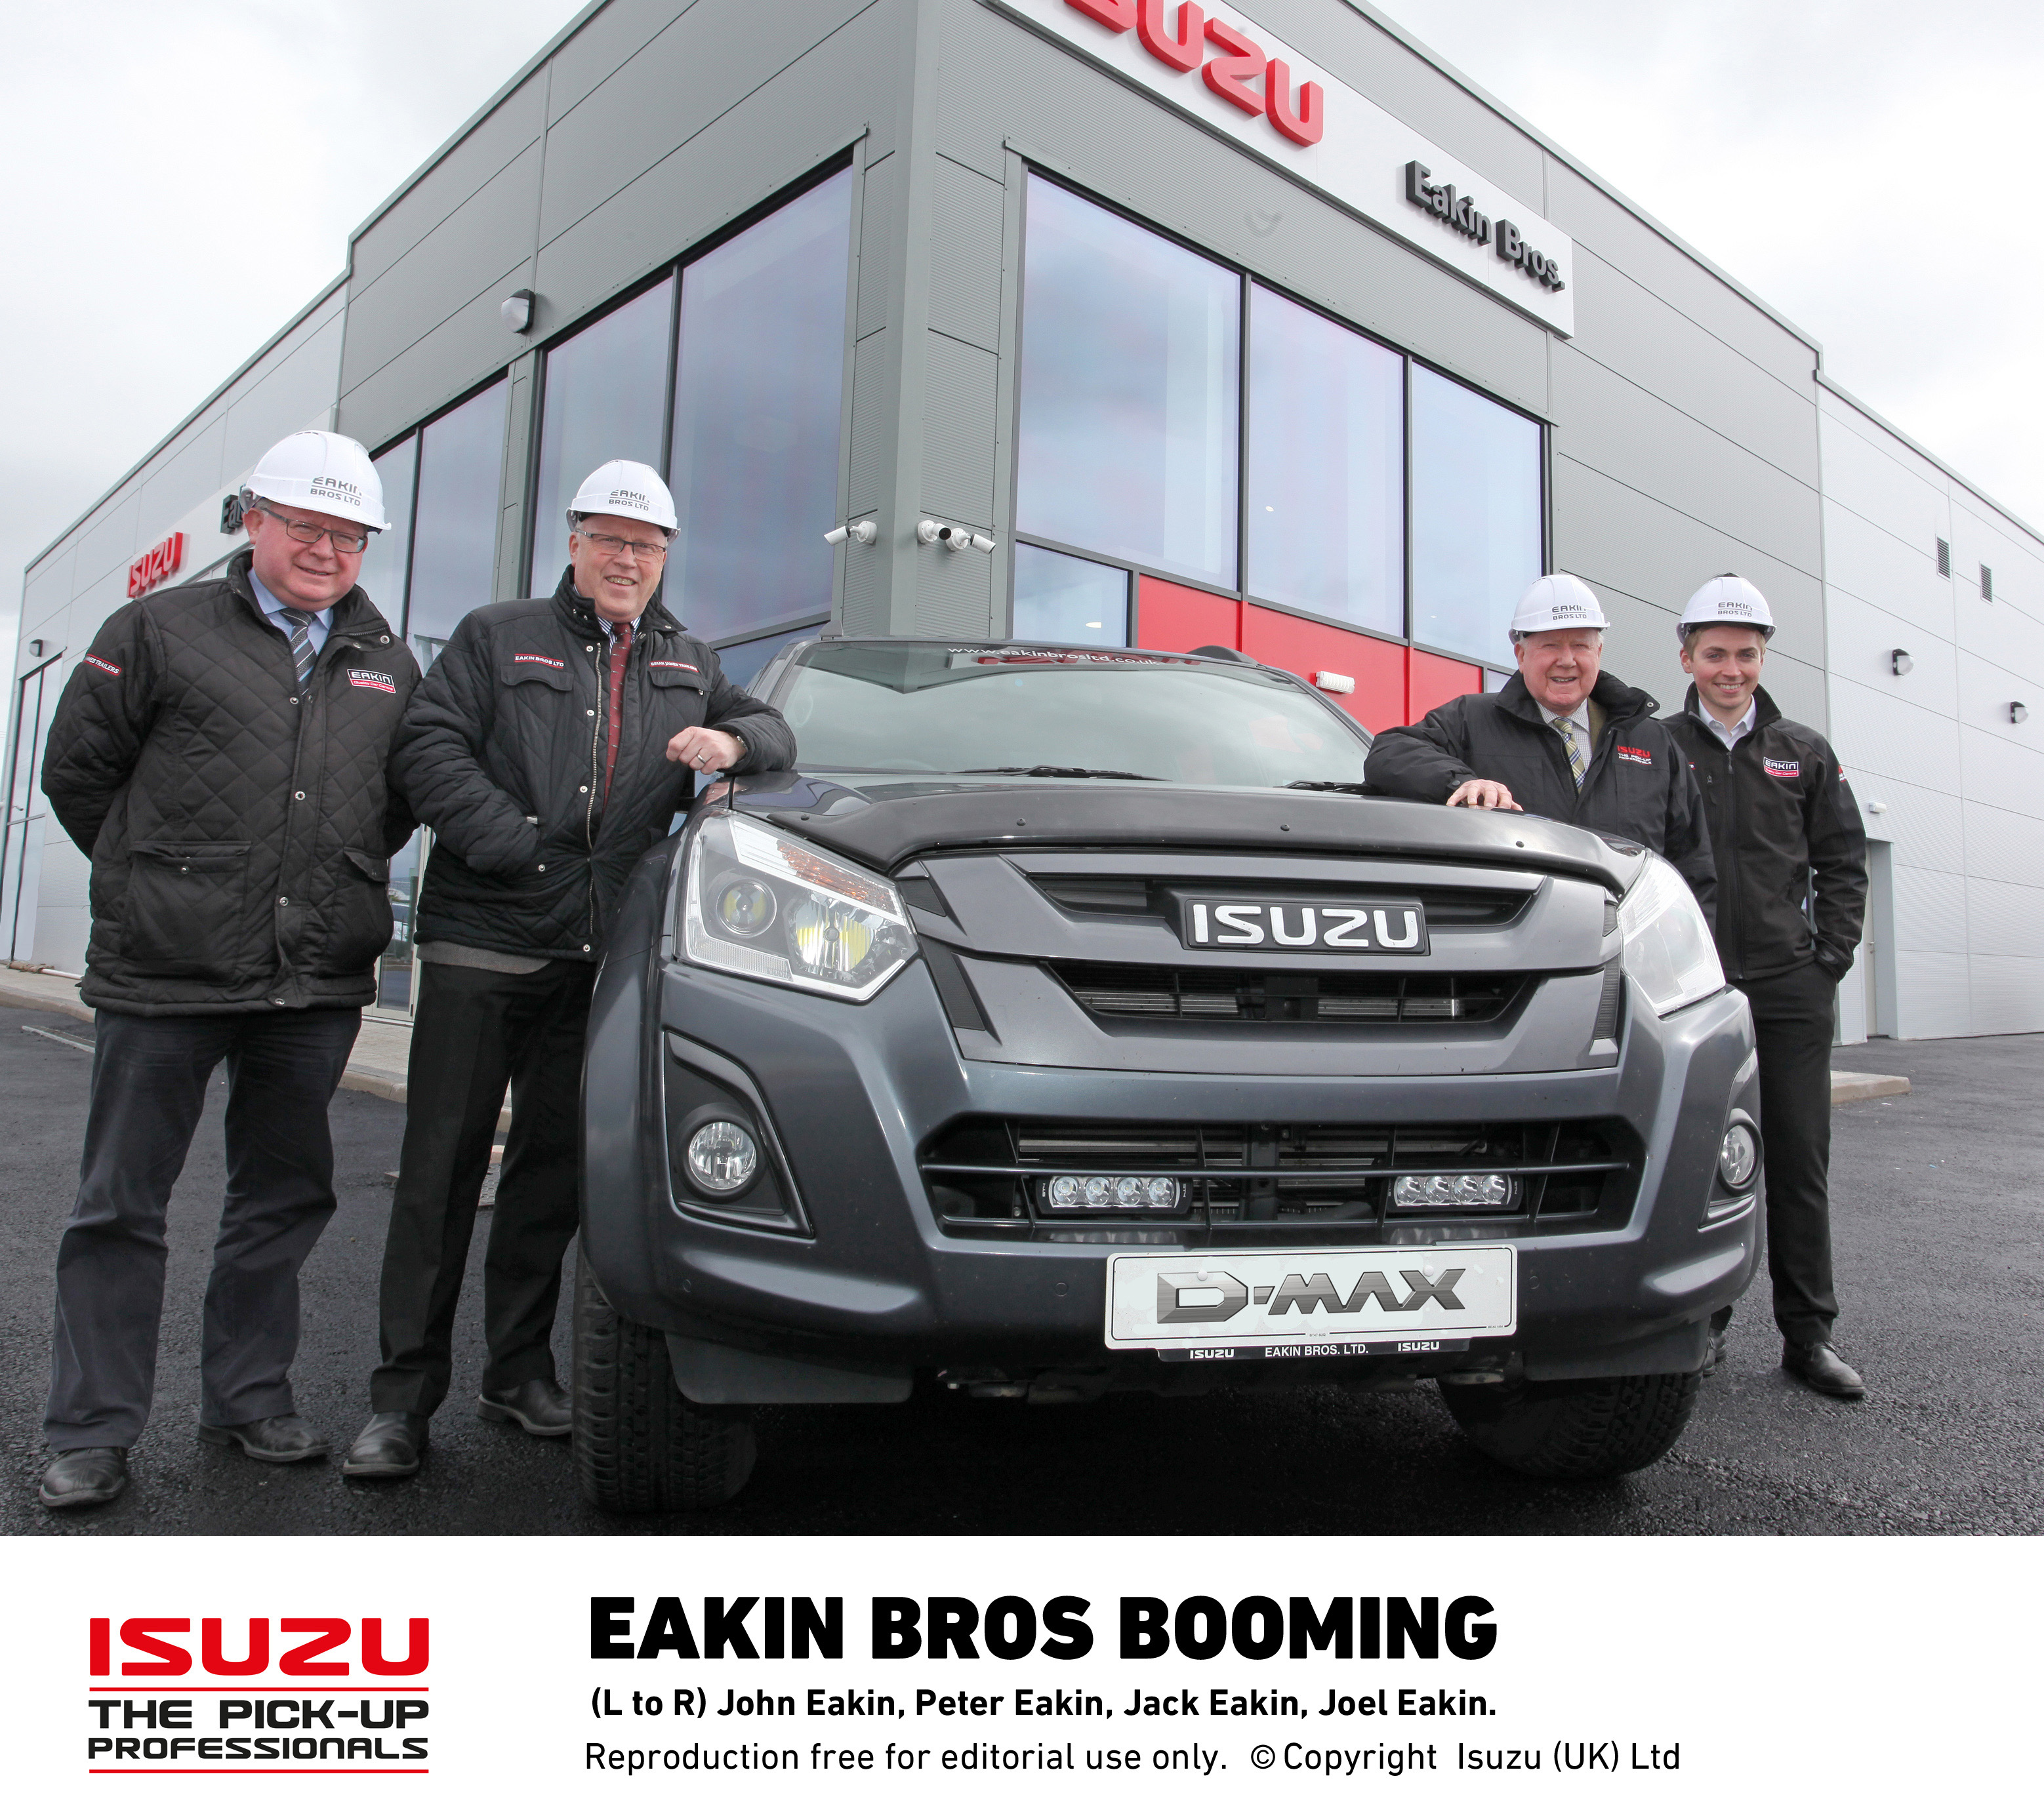 New Isuzu dealership in North West